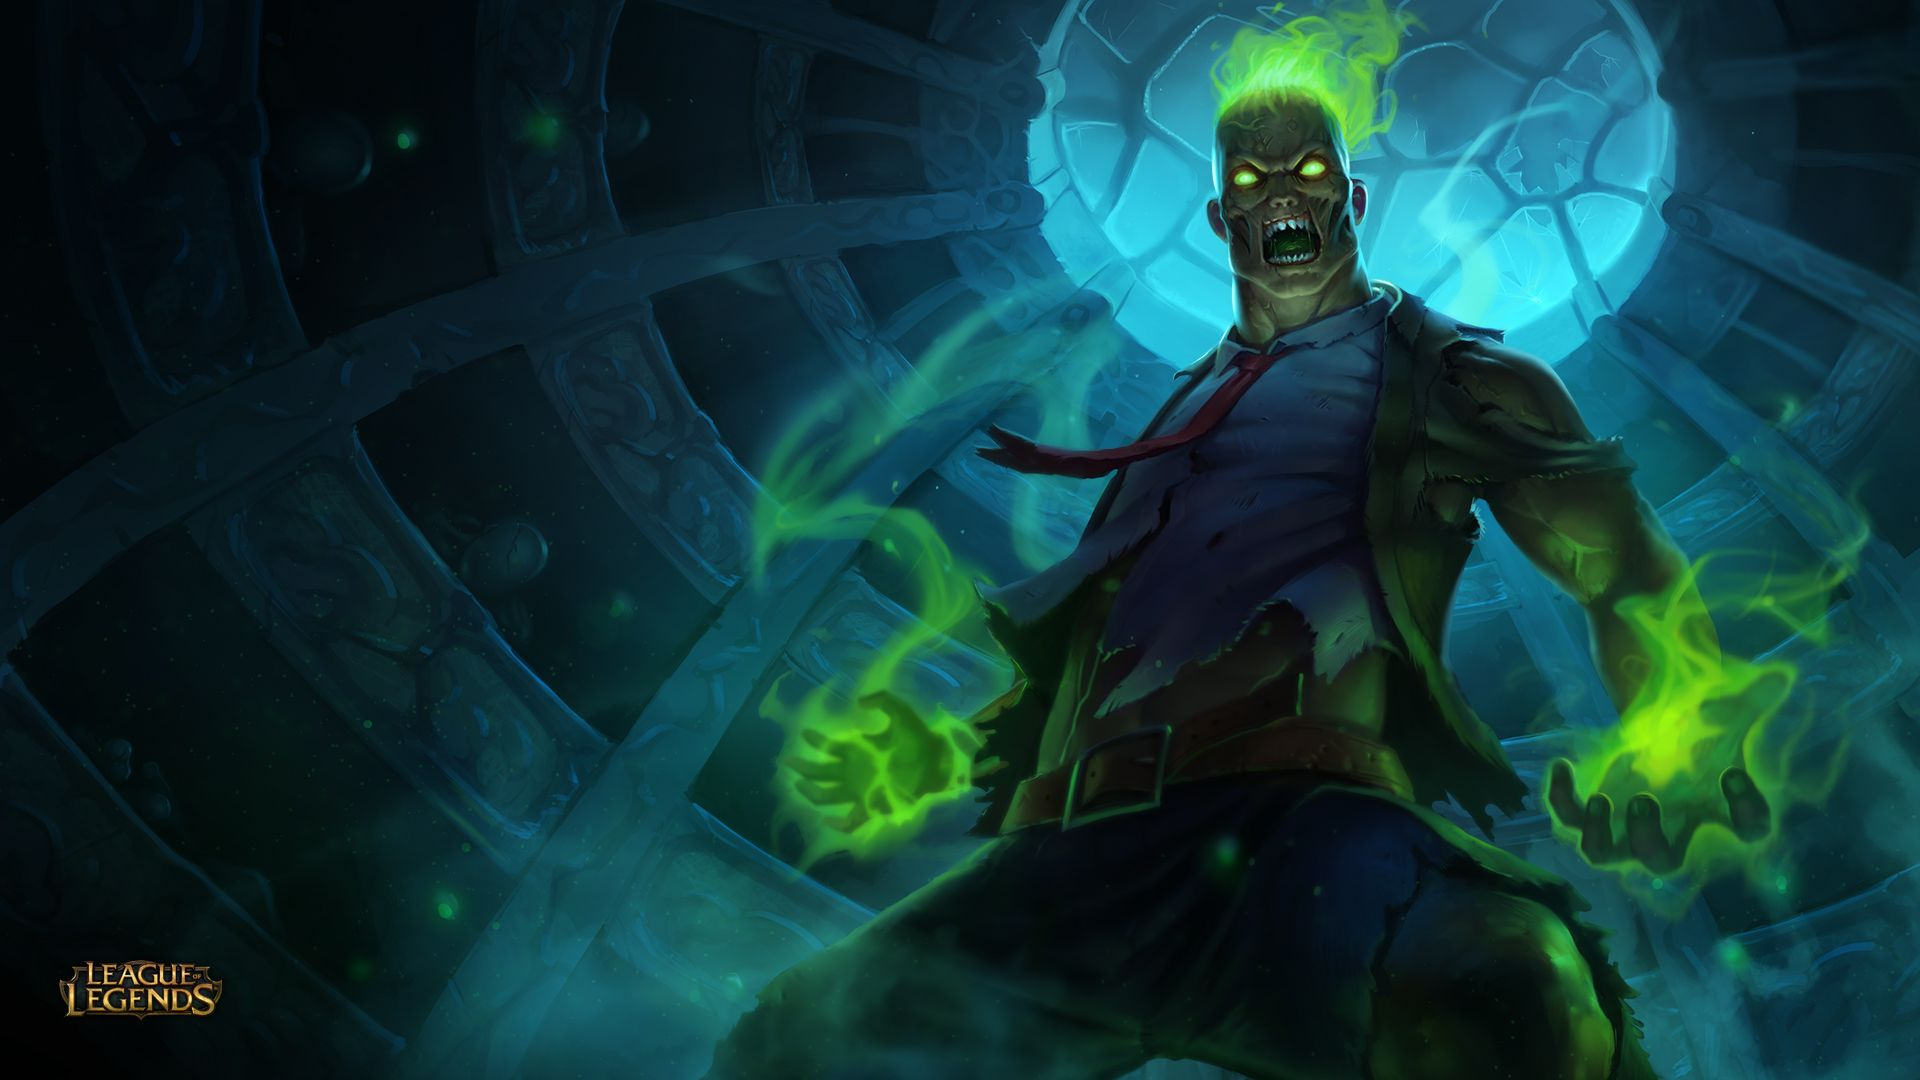 Zombie Brand League Of Legends Wallpapers HD League Of Legends Wallpapers |  Art-of-LoL | League of legends, League of legends characters, League of  legends game